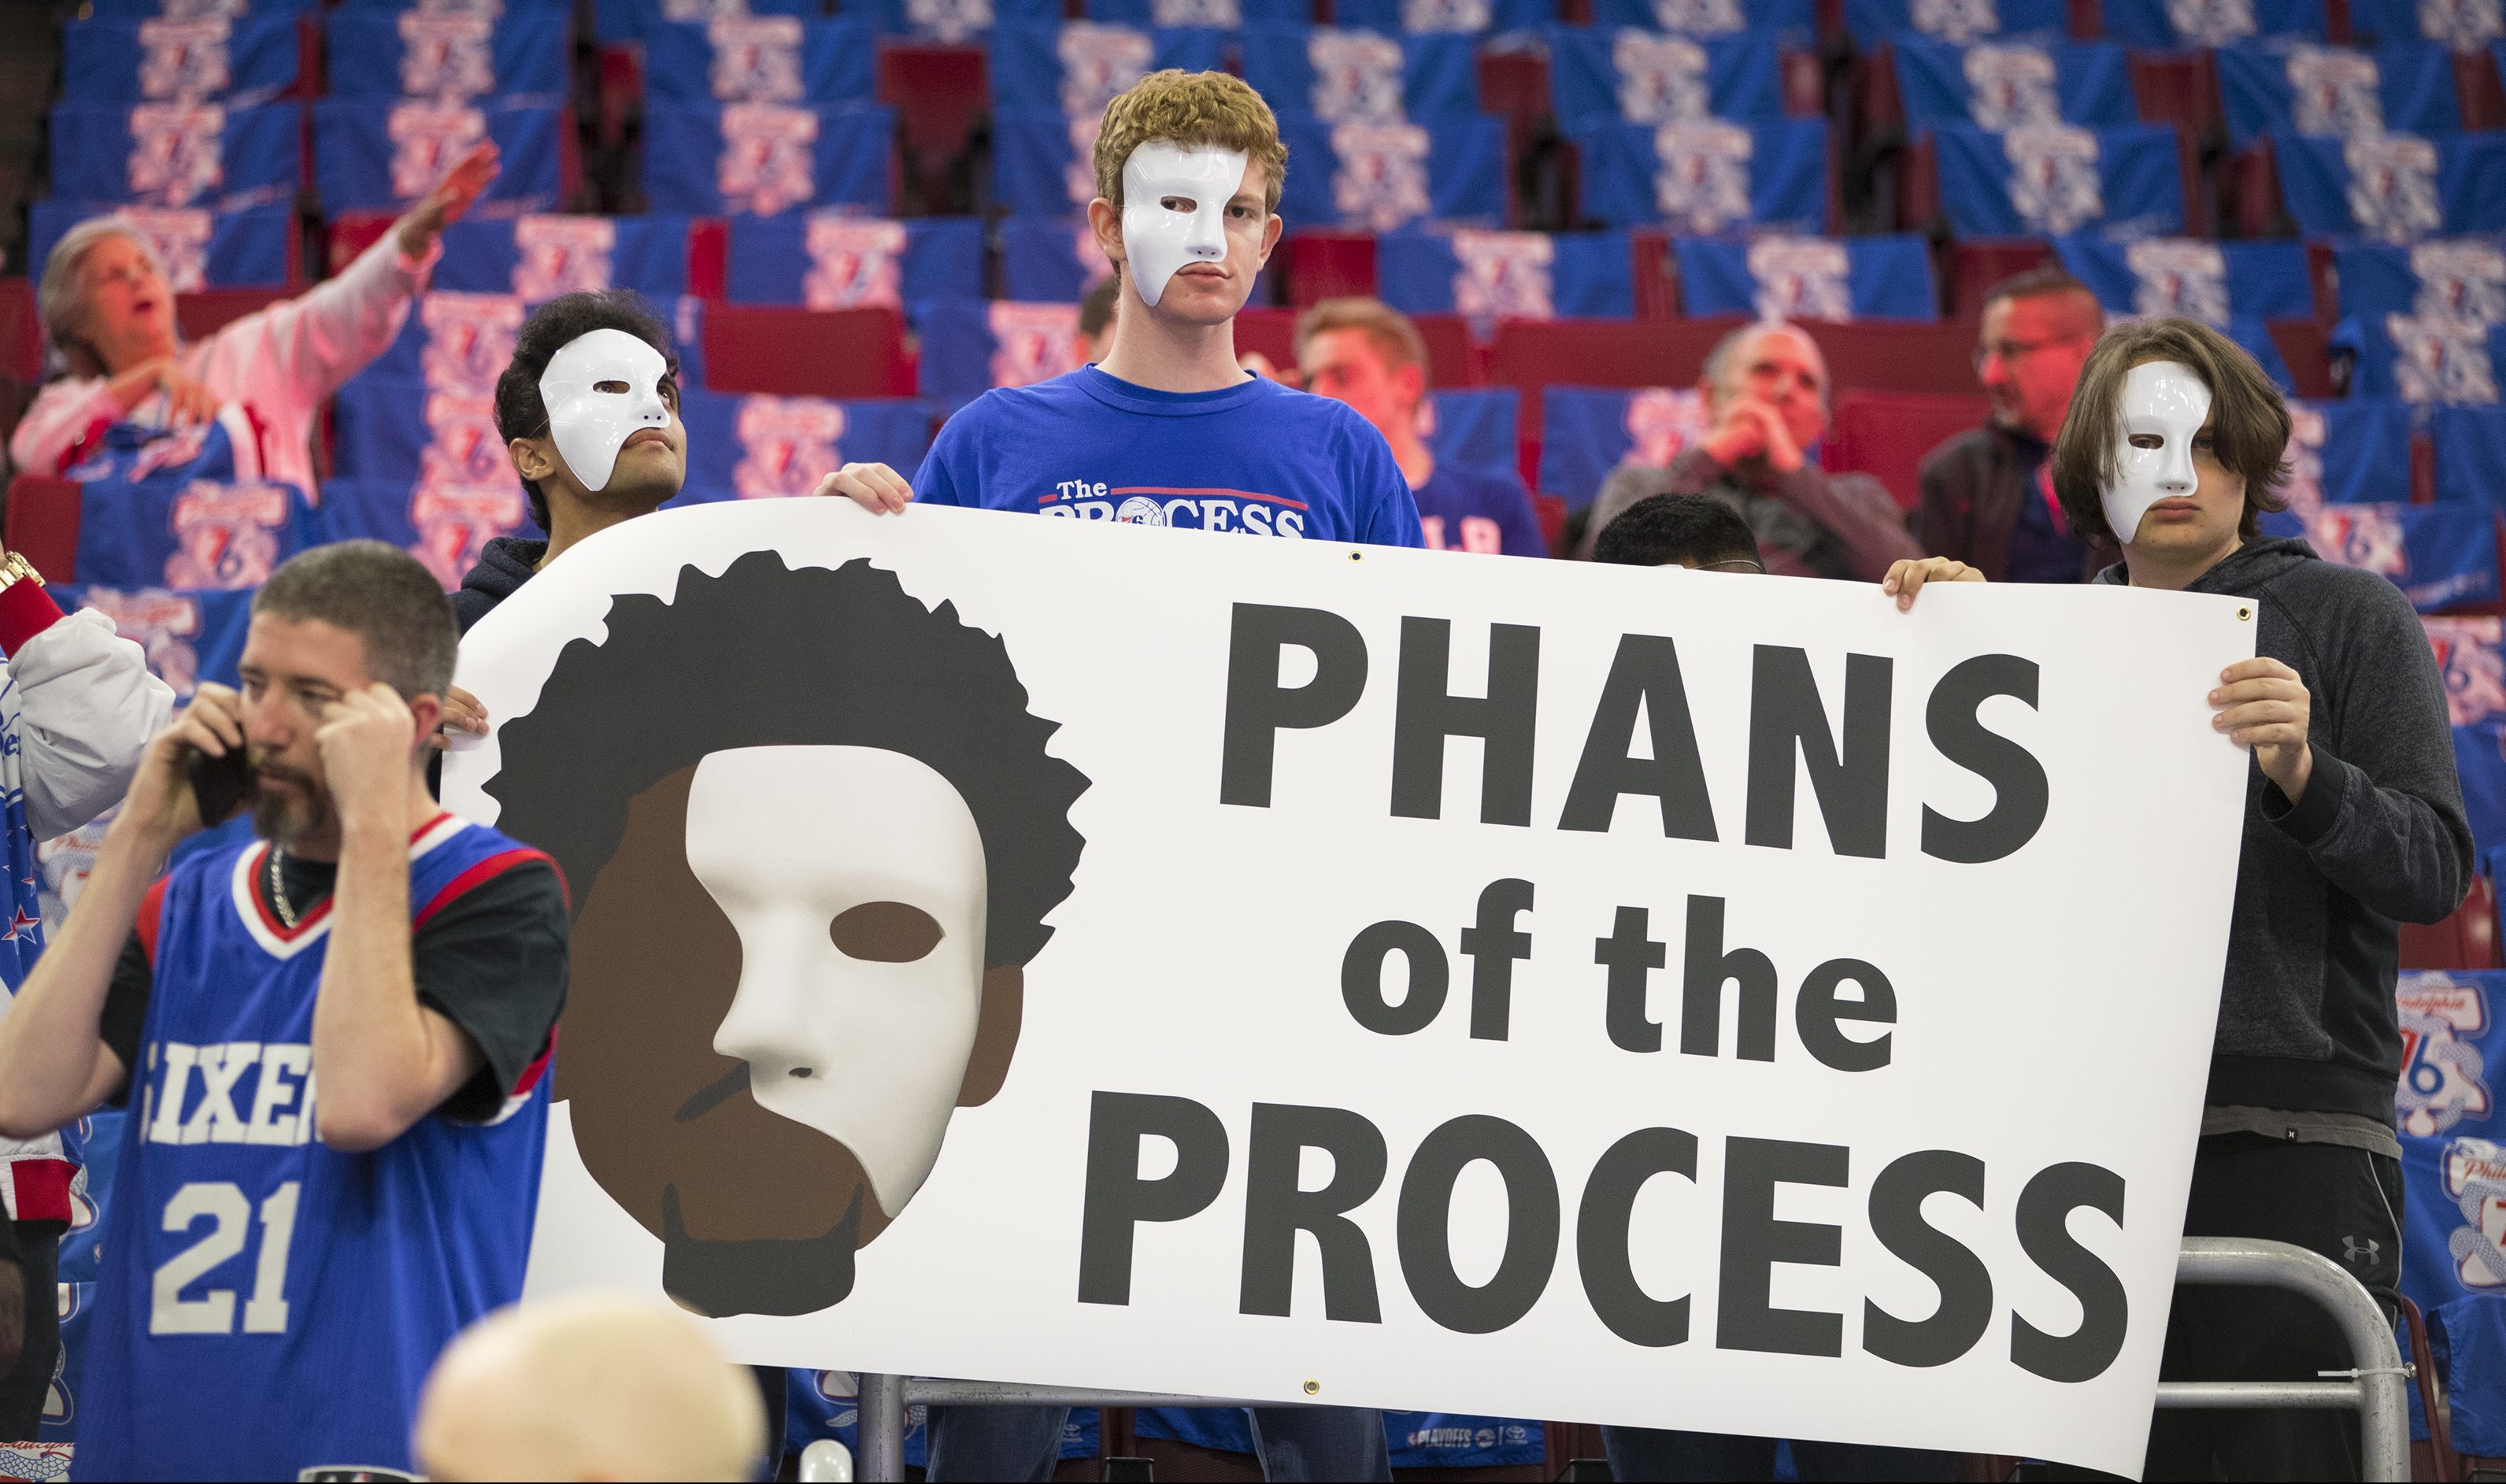 Joel Embiid fans showing their allegiance to the Process before a playoff game last month.